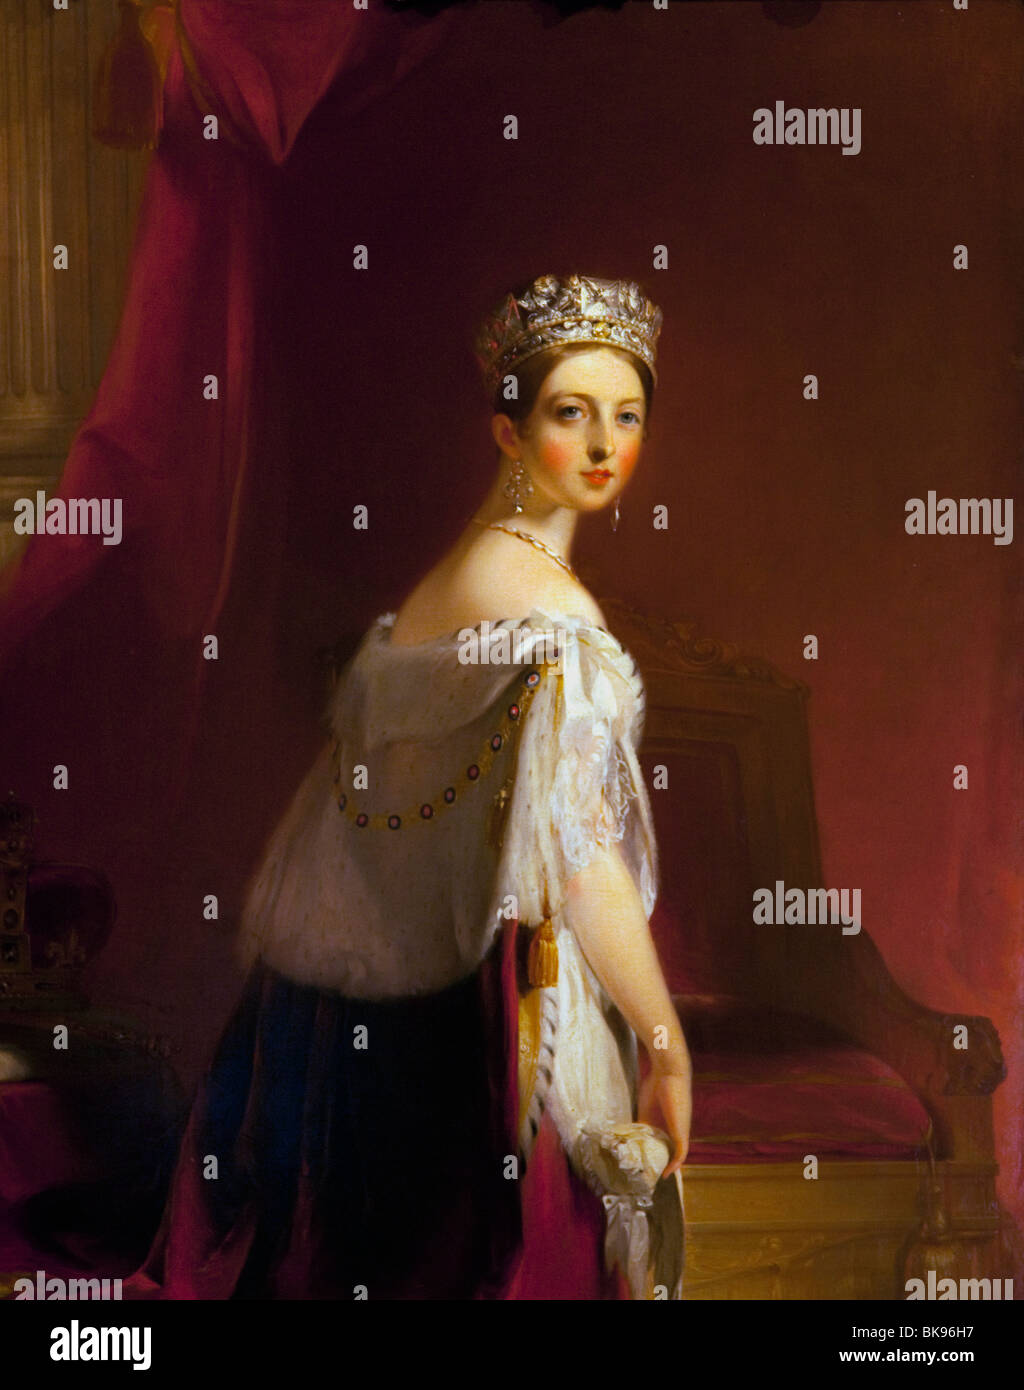 Queen Victoria by Thomas Sully, 1838, Wallace Collection, London, United Kingdom - Stock Image